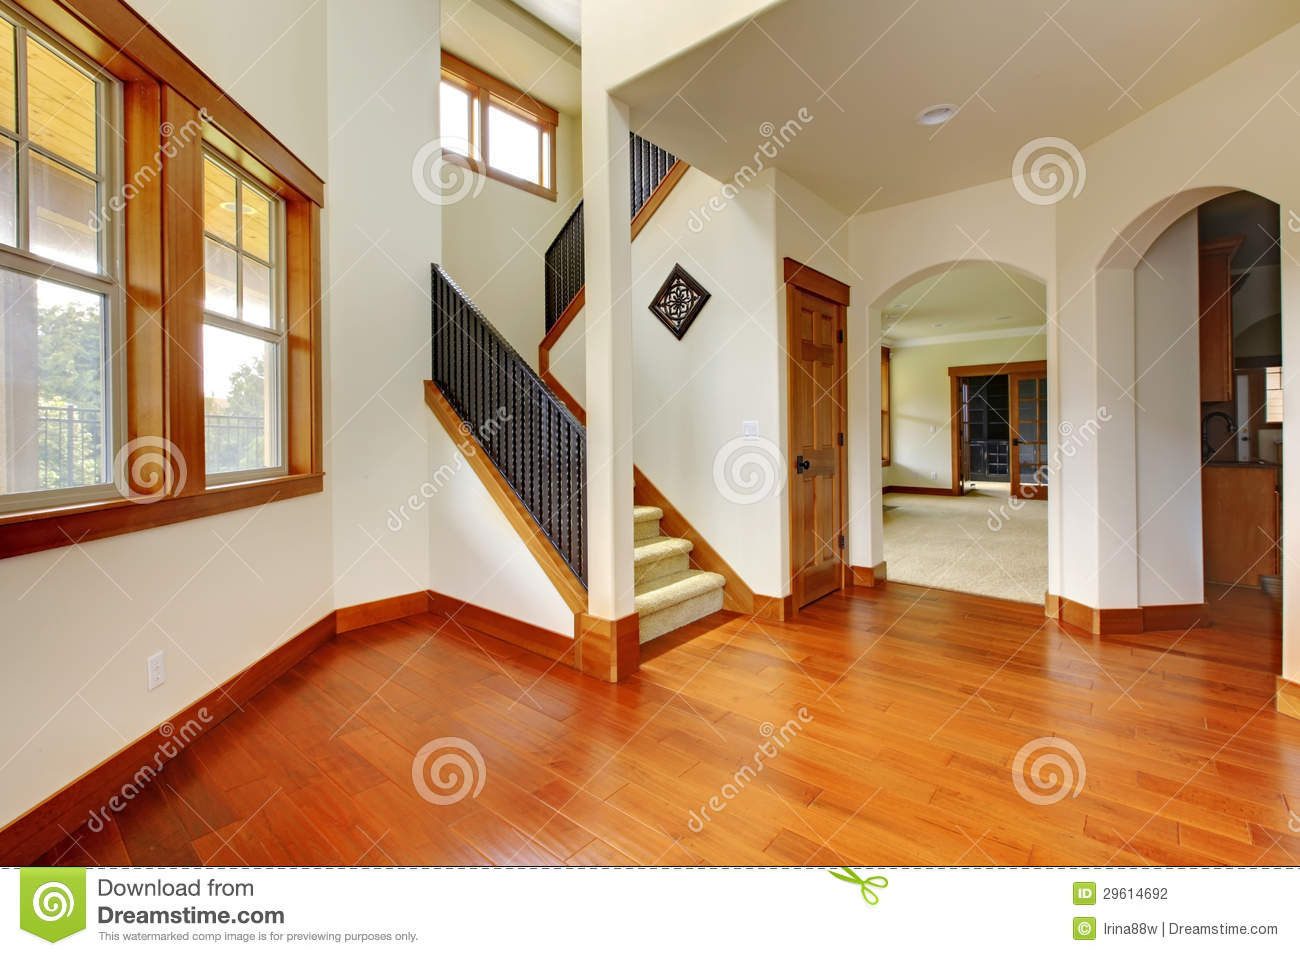 Interieur Maison Ossature Bois Of Beautiful Home Entrance With Wood Floor New Luxury Home